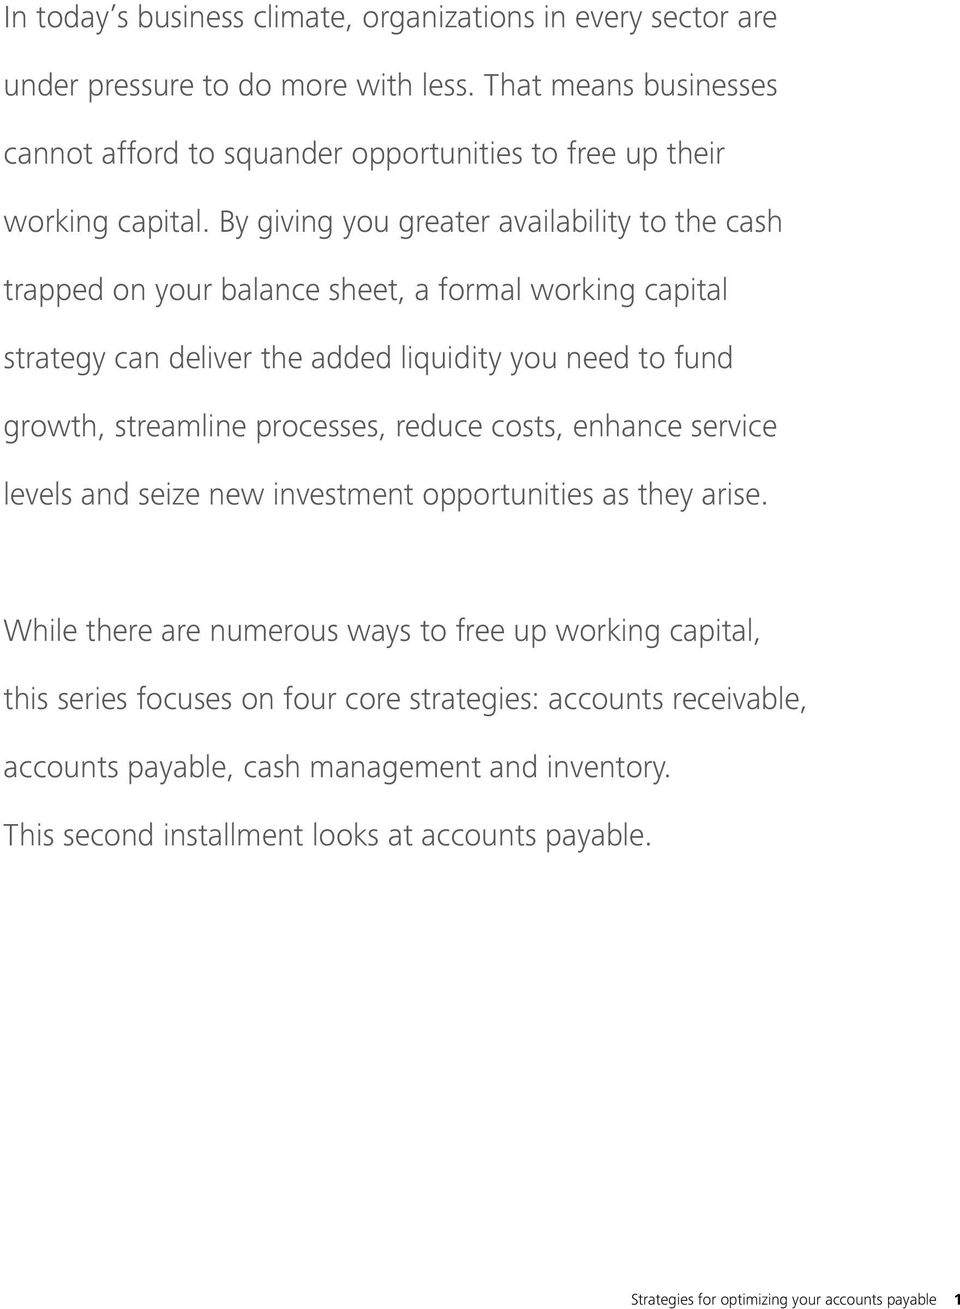 By giving you greater availability to the cash trapped on your balance sheet, a formal working capital strategy can deliver the added liquidity you need to fund growth, streamline